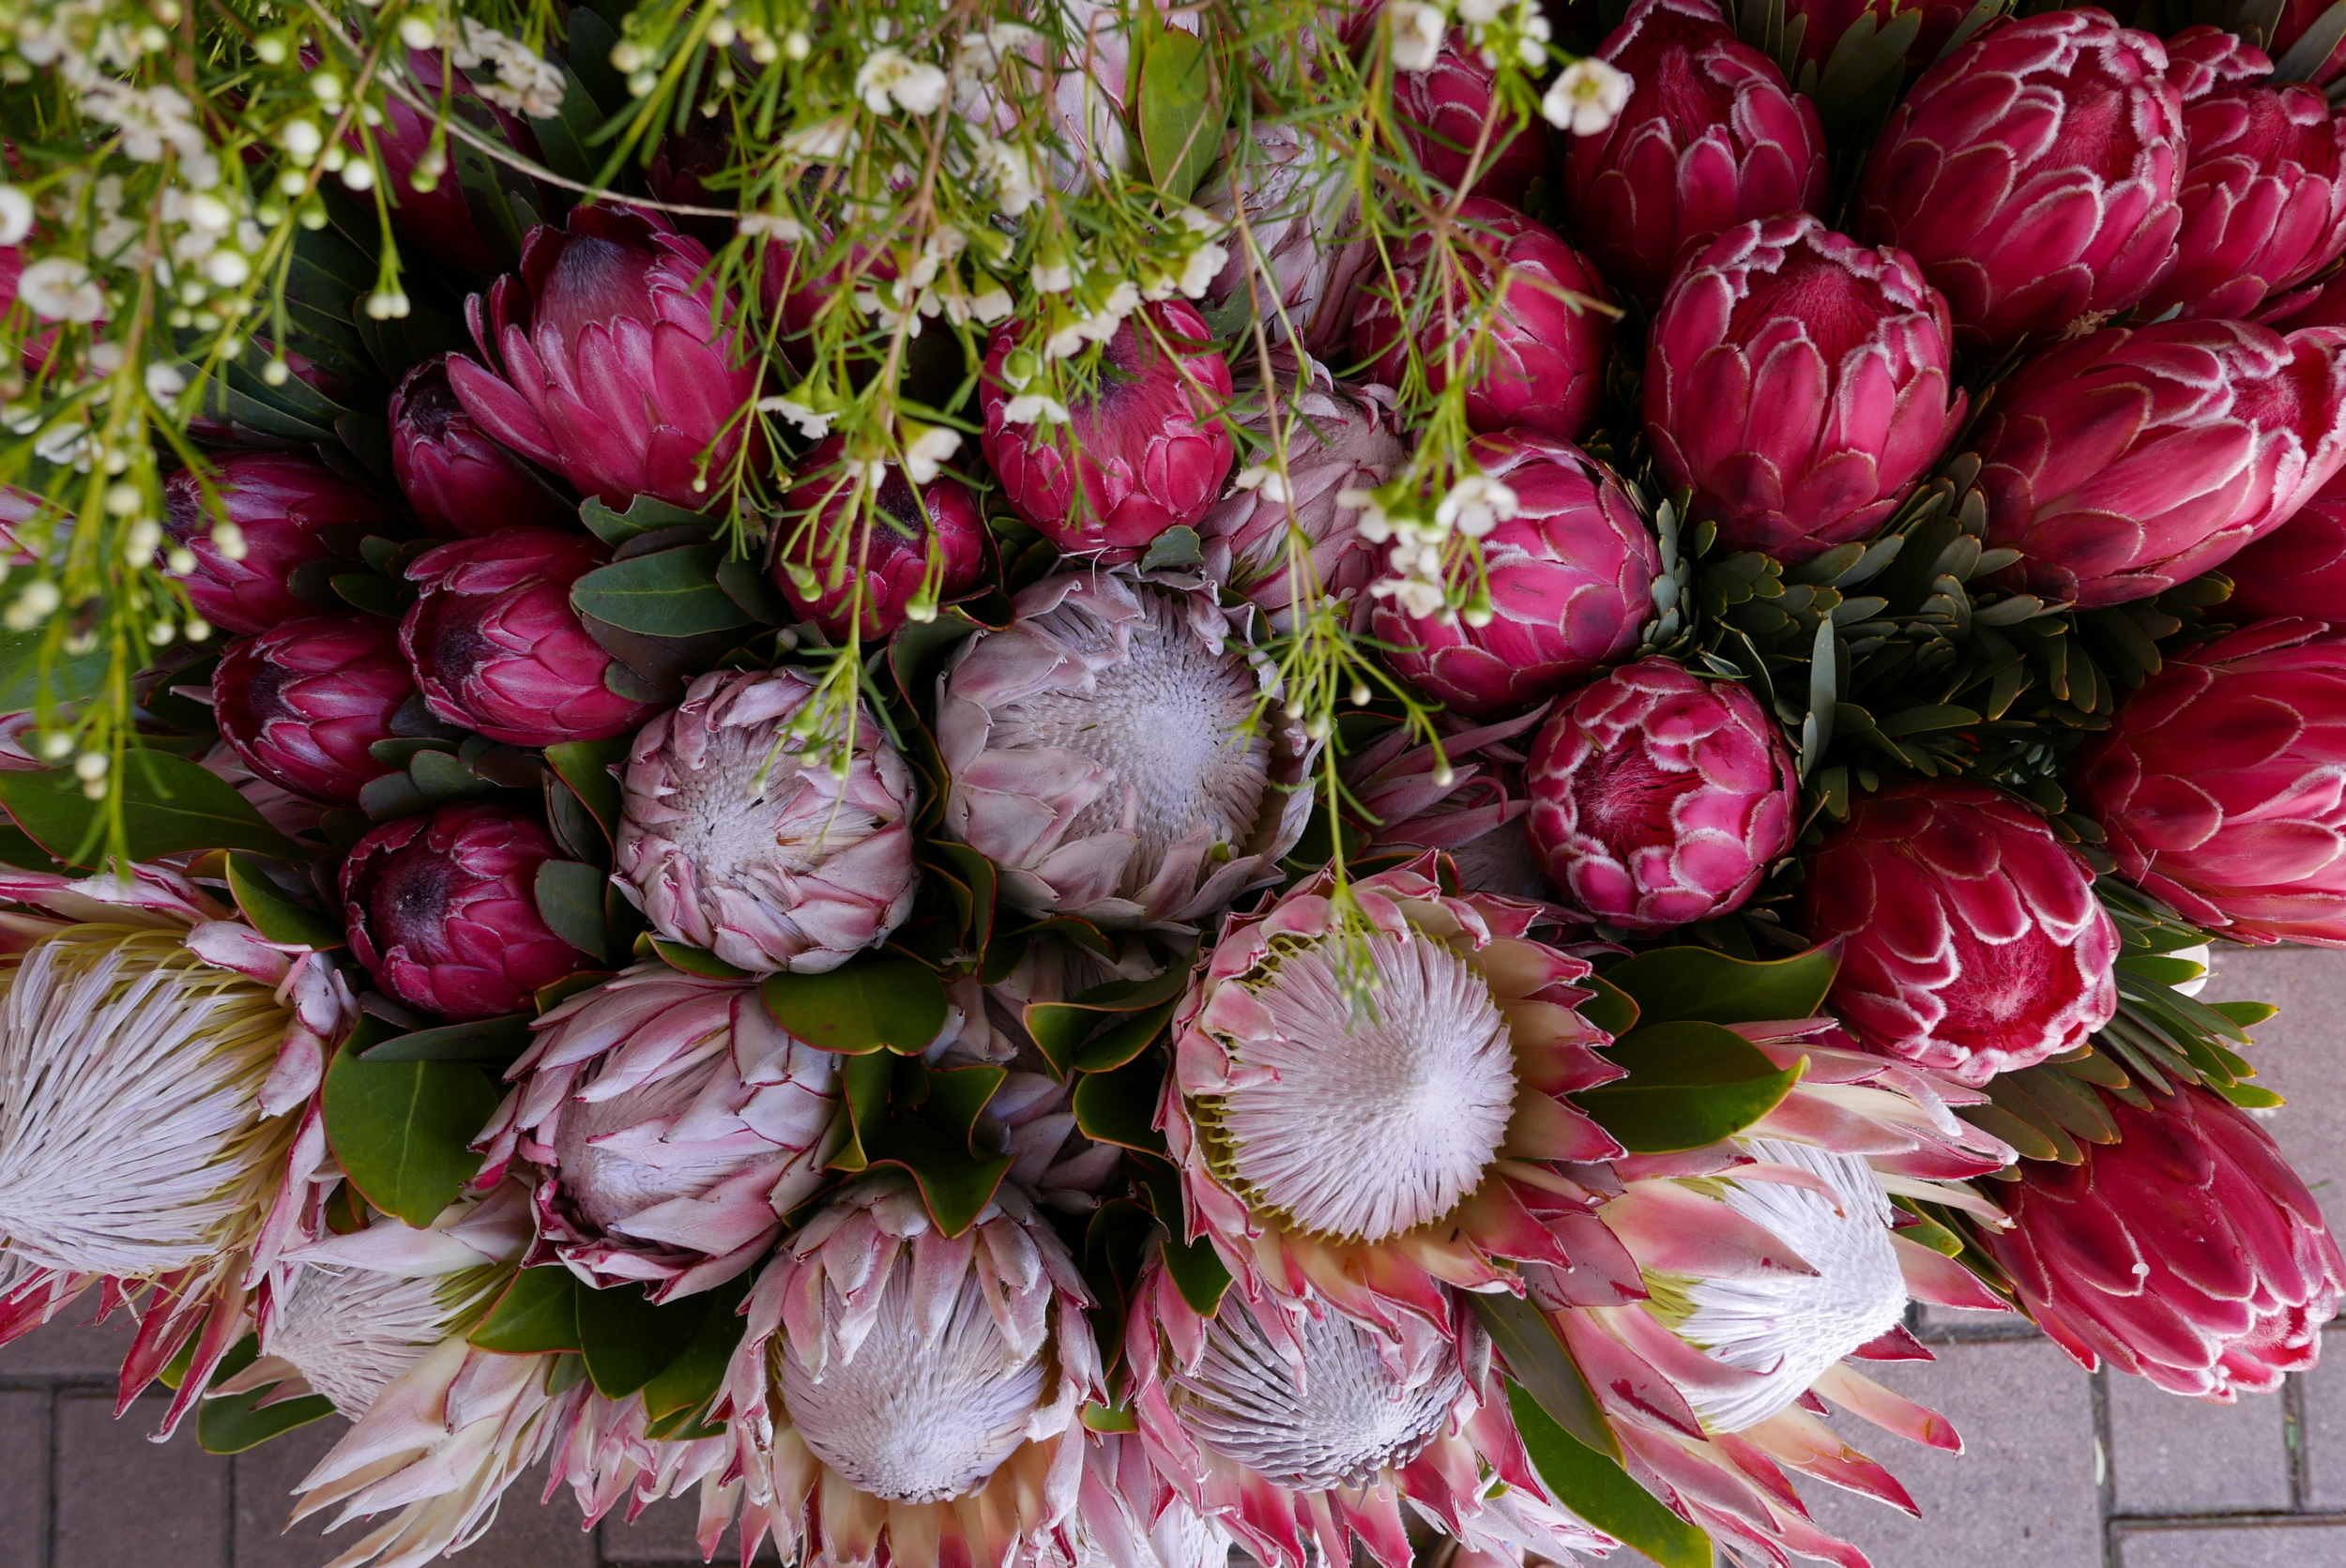 If you've seen my wedding stationary, you know how much I love proteas.